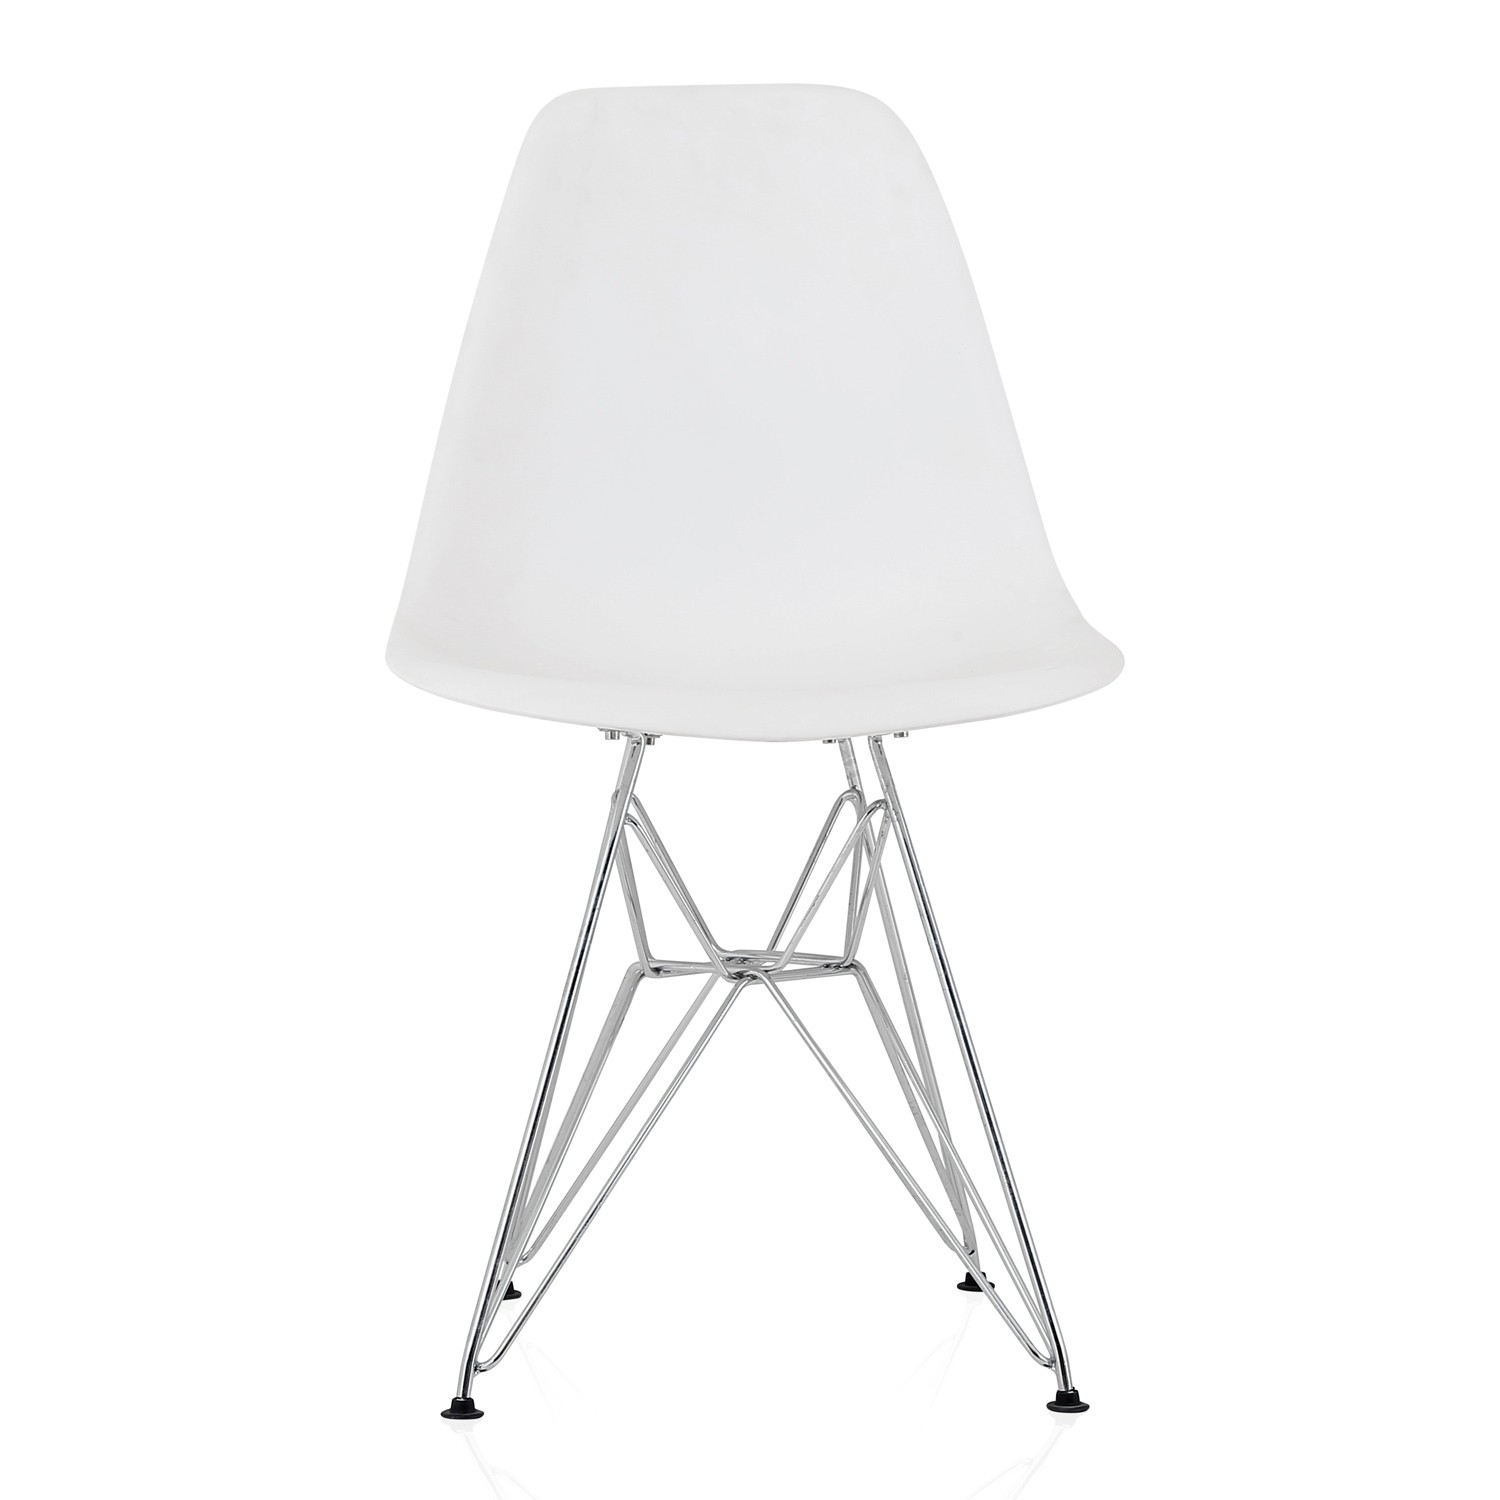 plastic chairs with steel legs office chair shop near me eames style dsr molded white dining shell